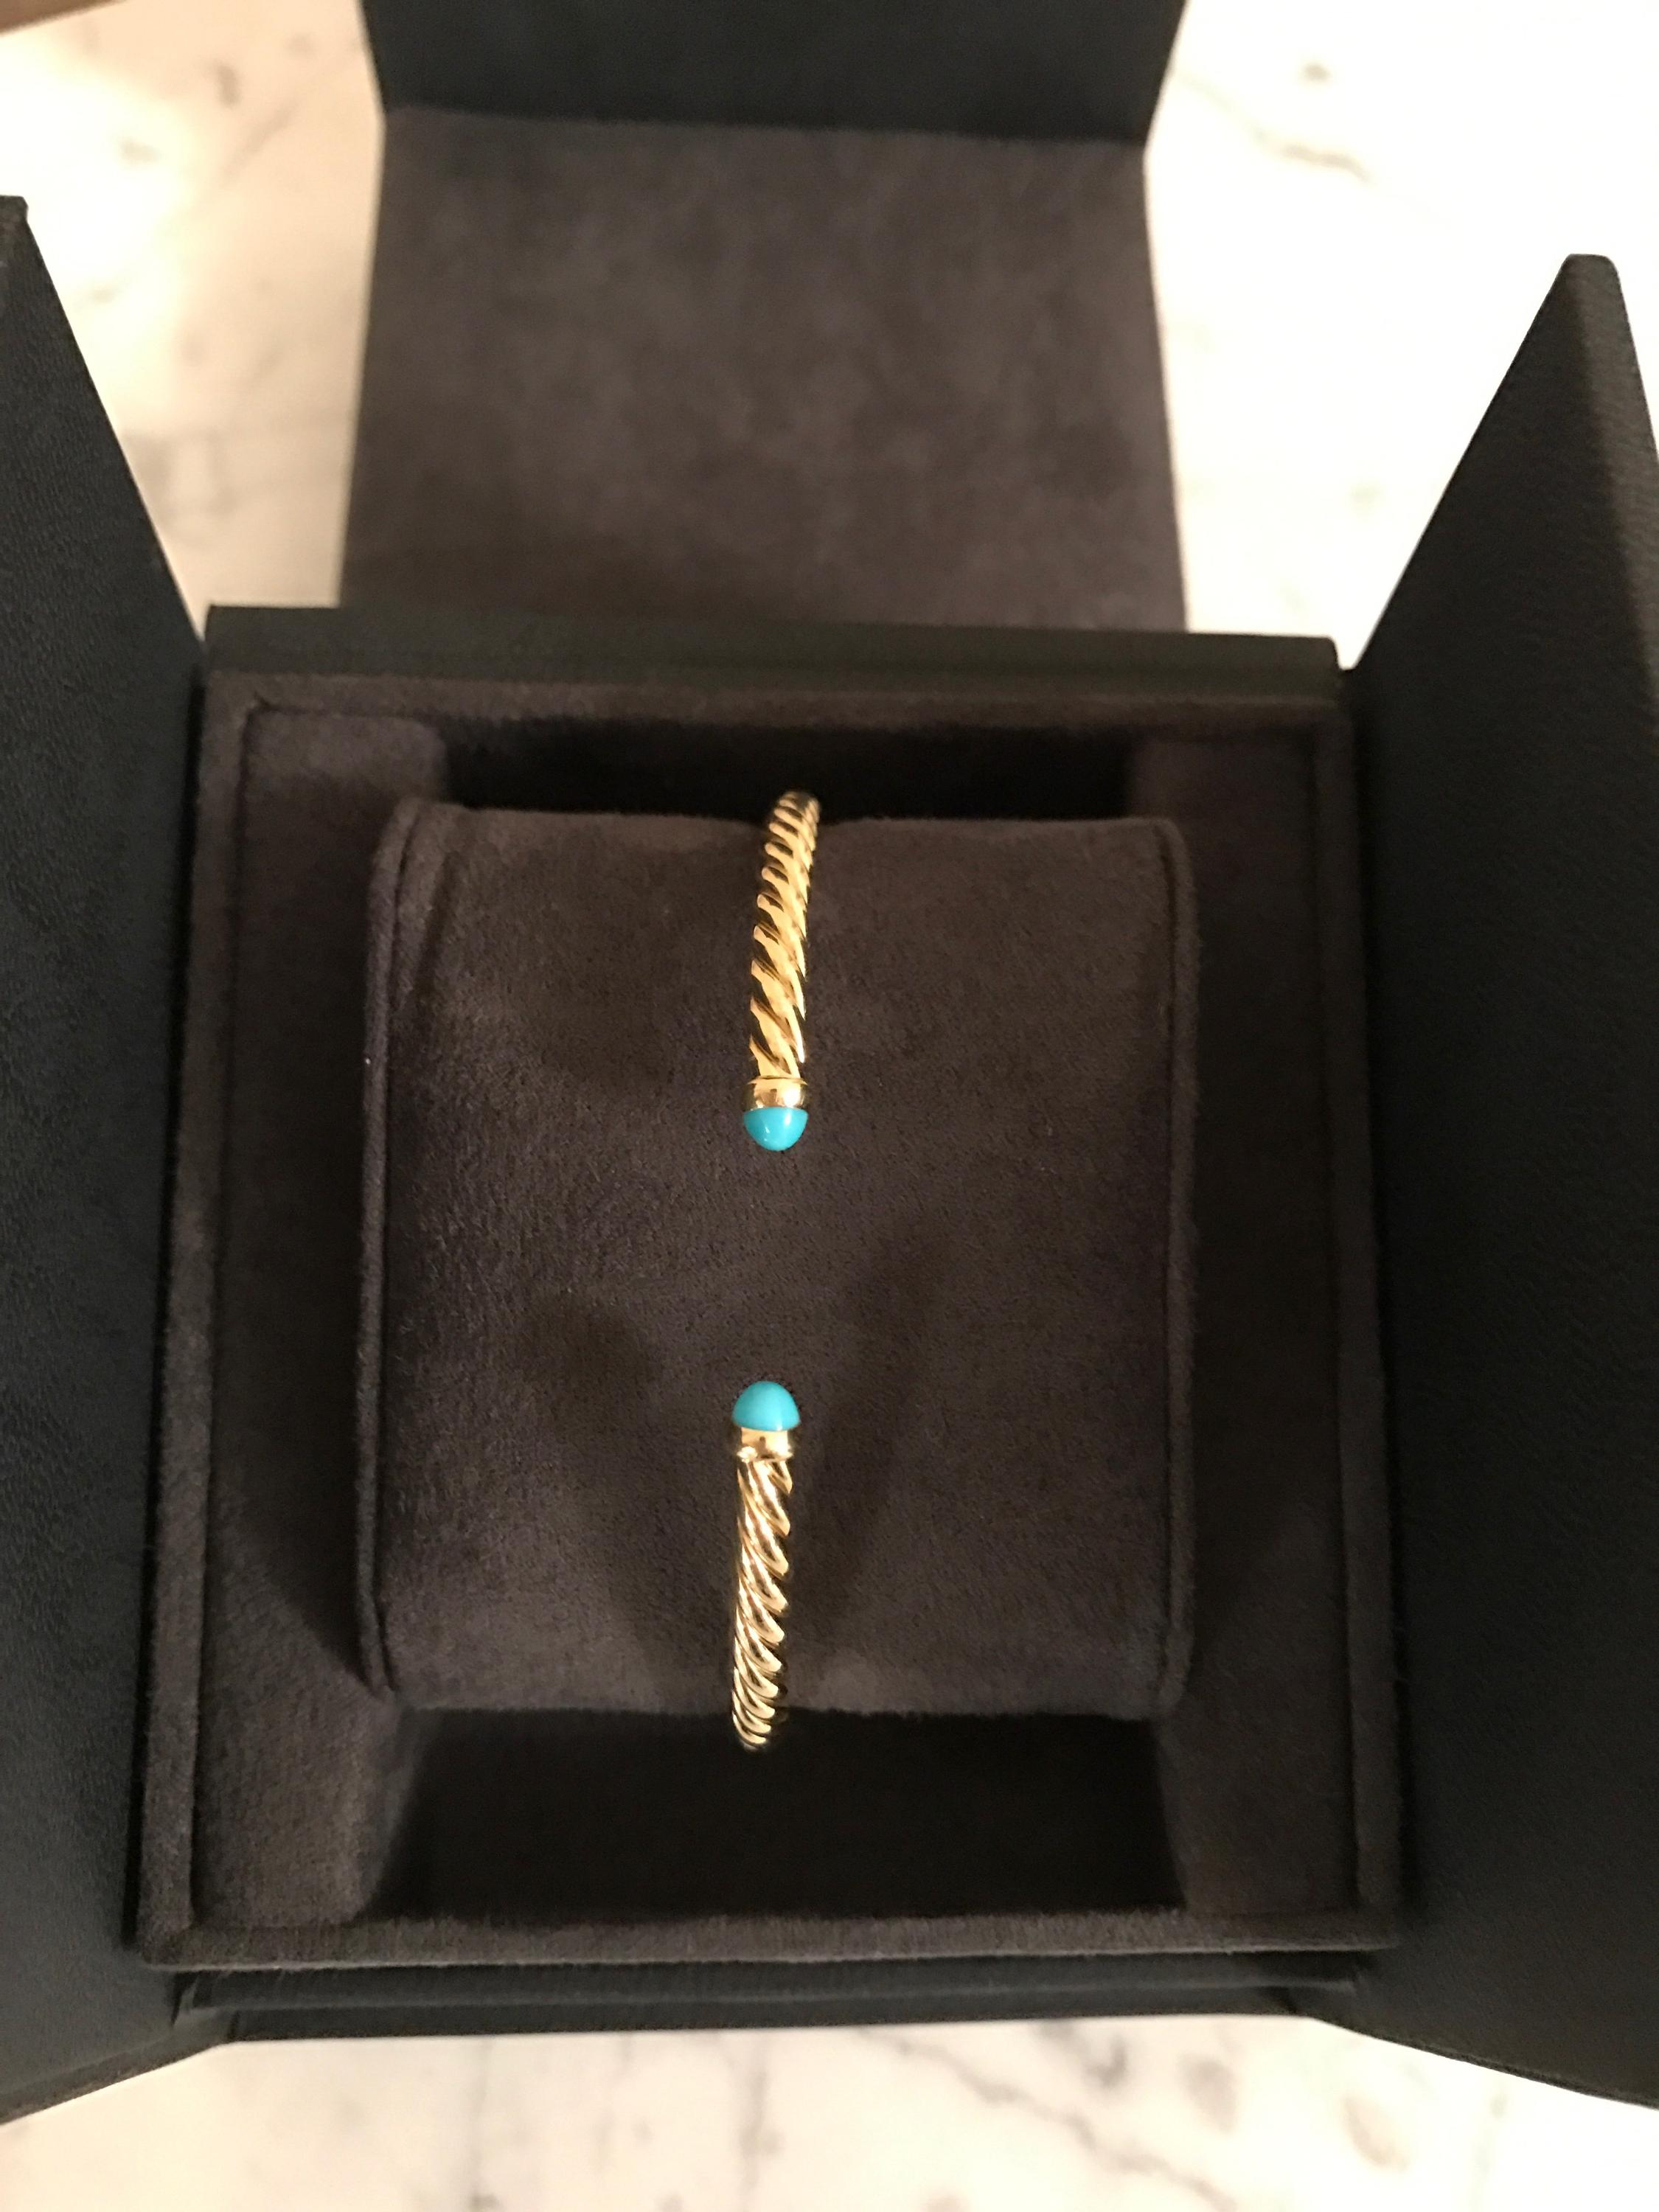 David Yurman Turquoise 18k Yellow Gold and Cable Bracelet Tradesy